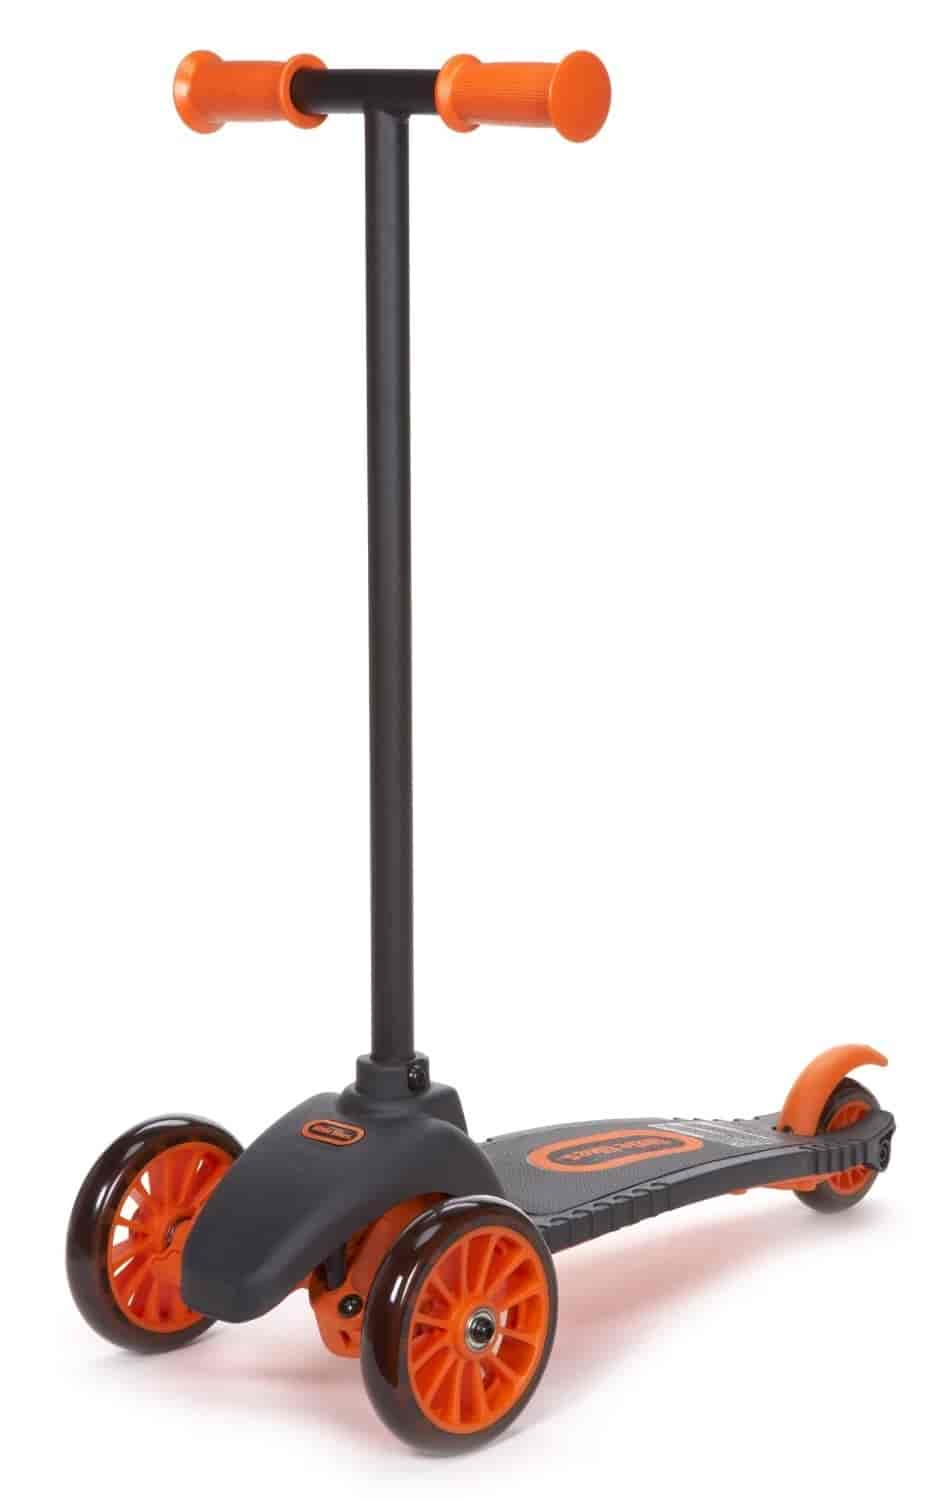 Buy Little Tikes Lean to Turn Scooter - Orange [633263], Features ...